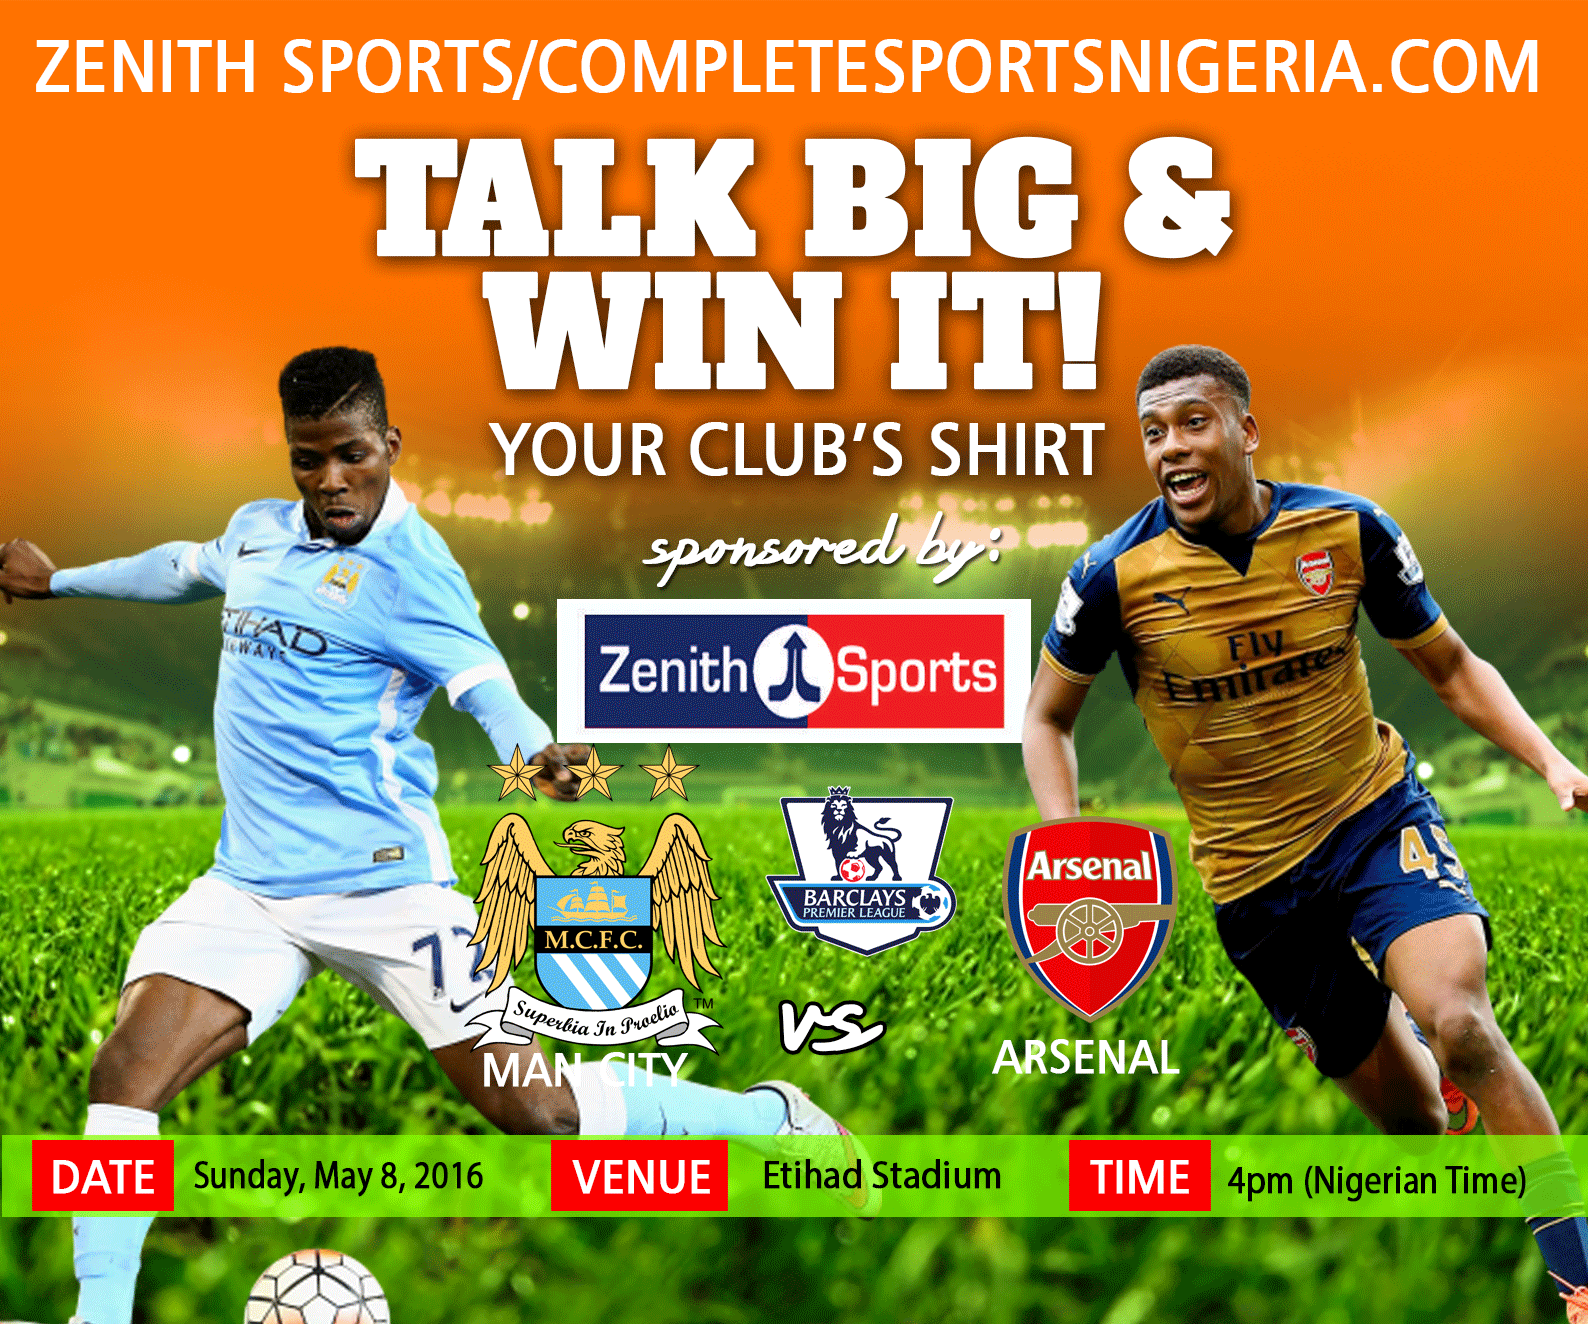 The Winners: Manchester City Vs Arsenal Talk Big & Win It!